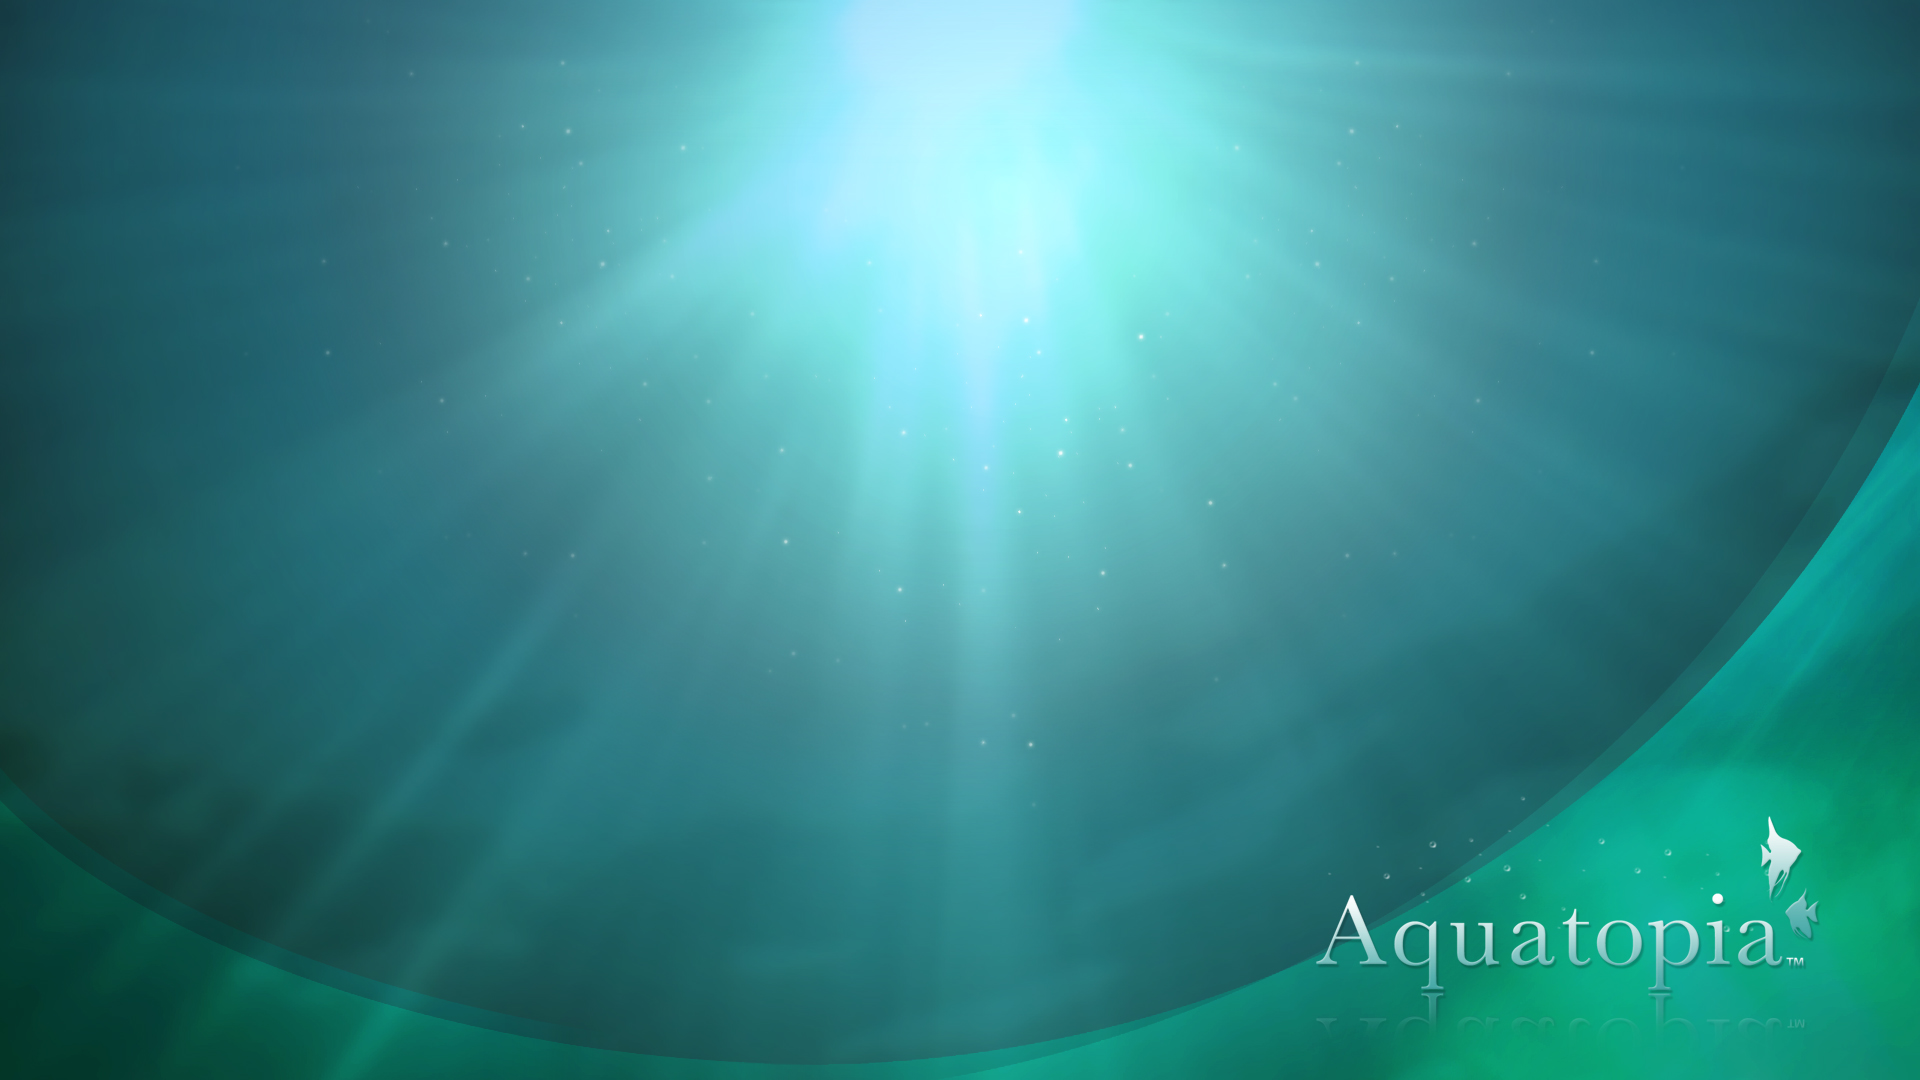 Aquatopia Wallpapers